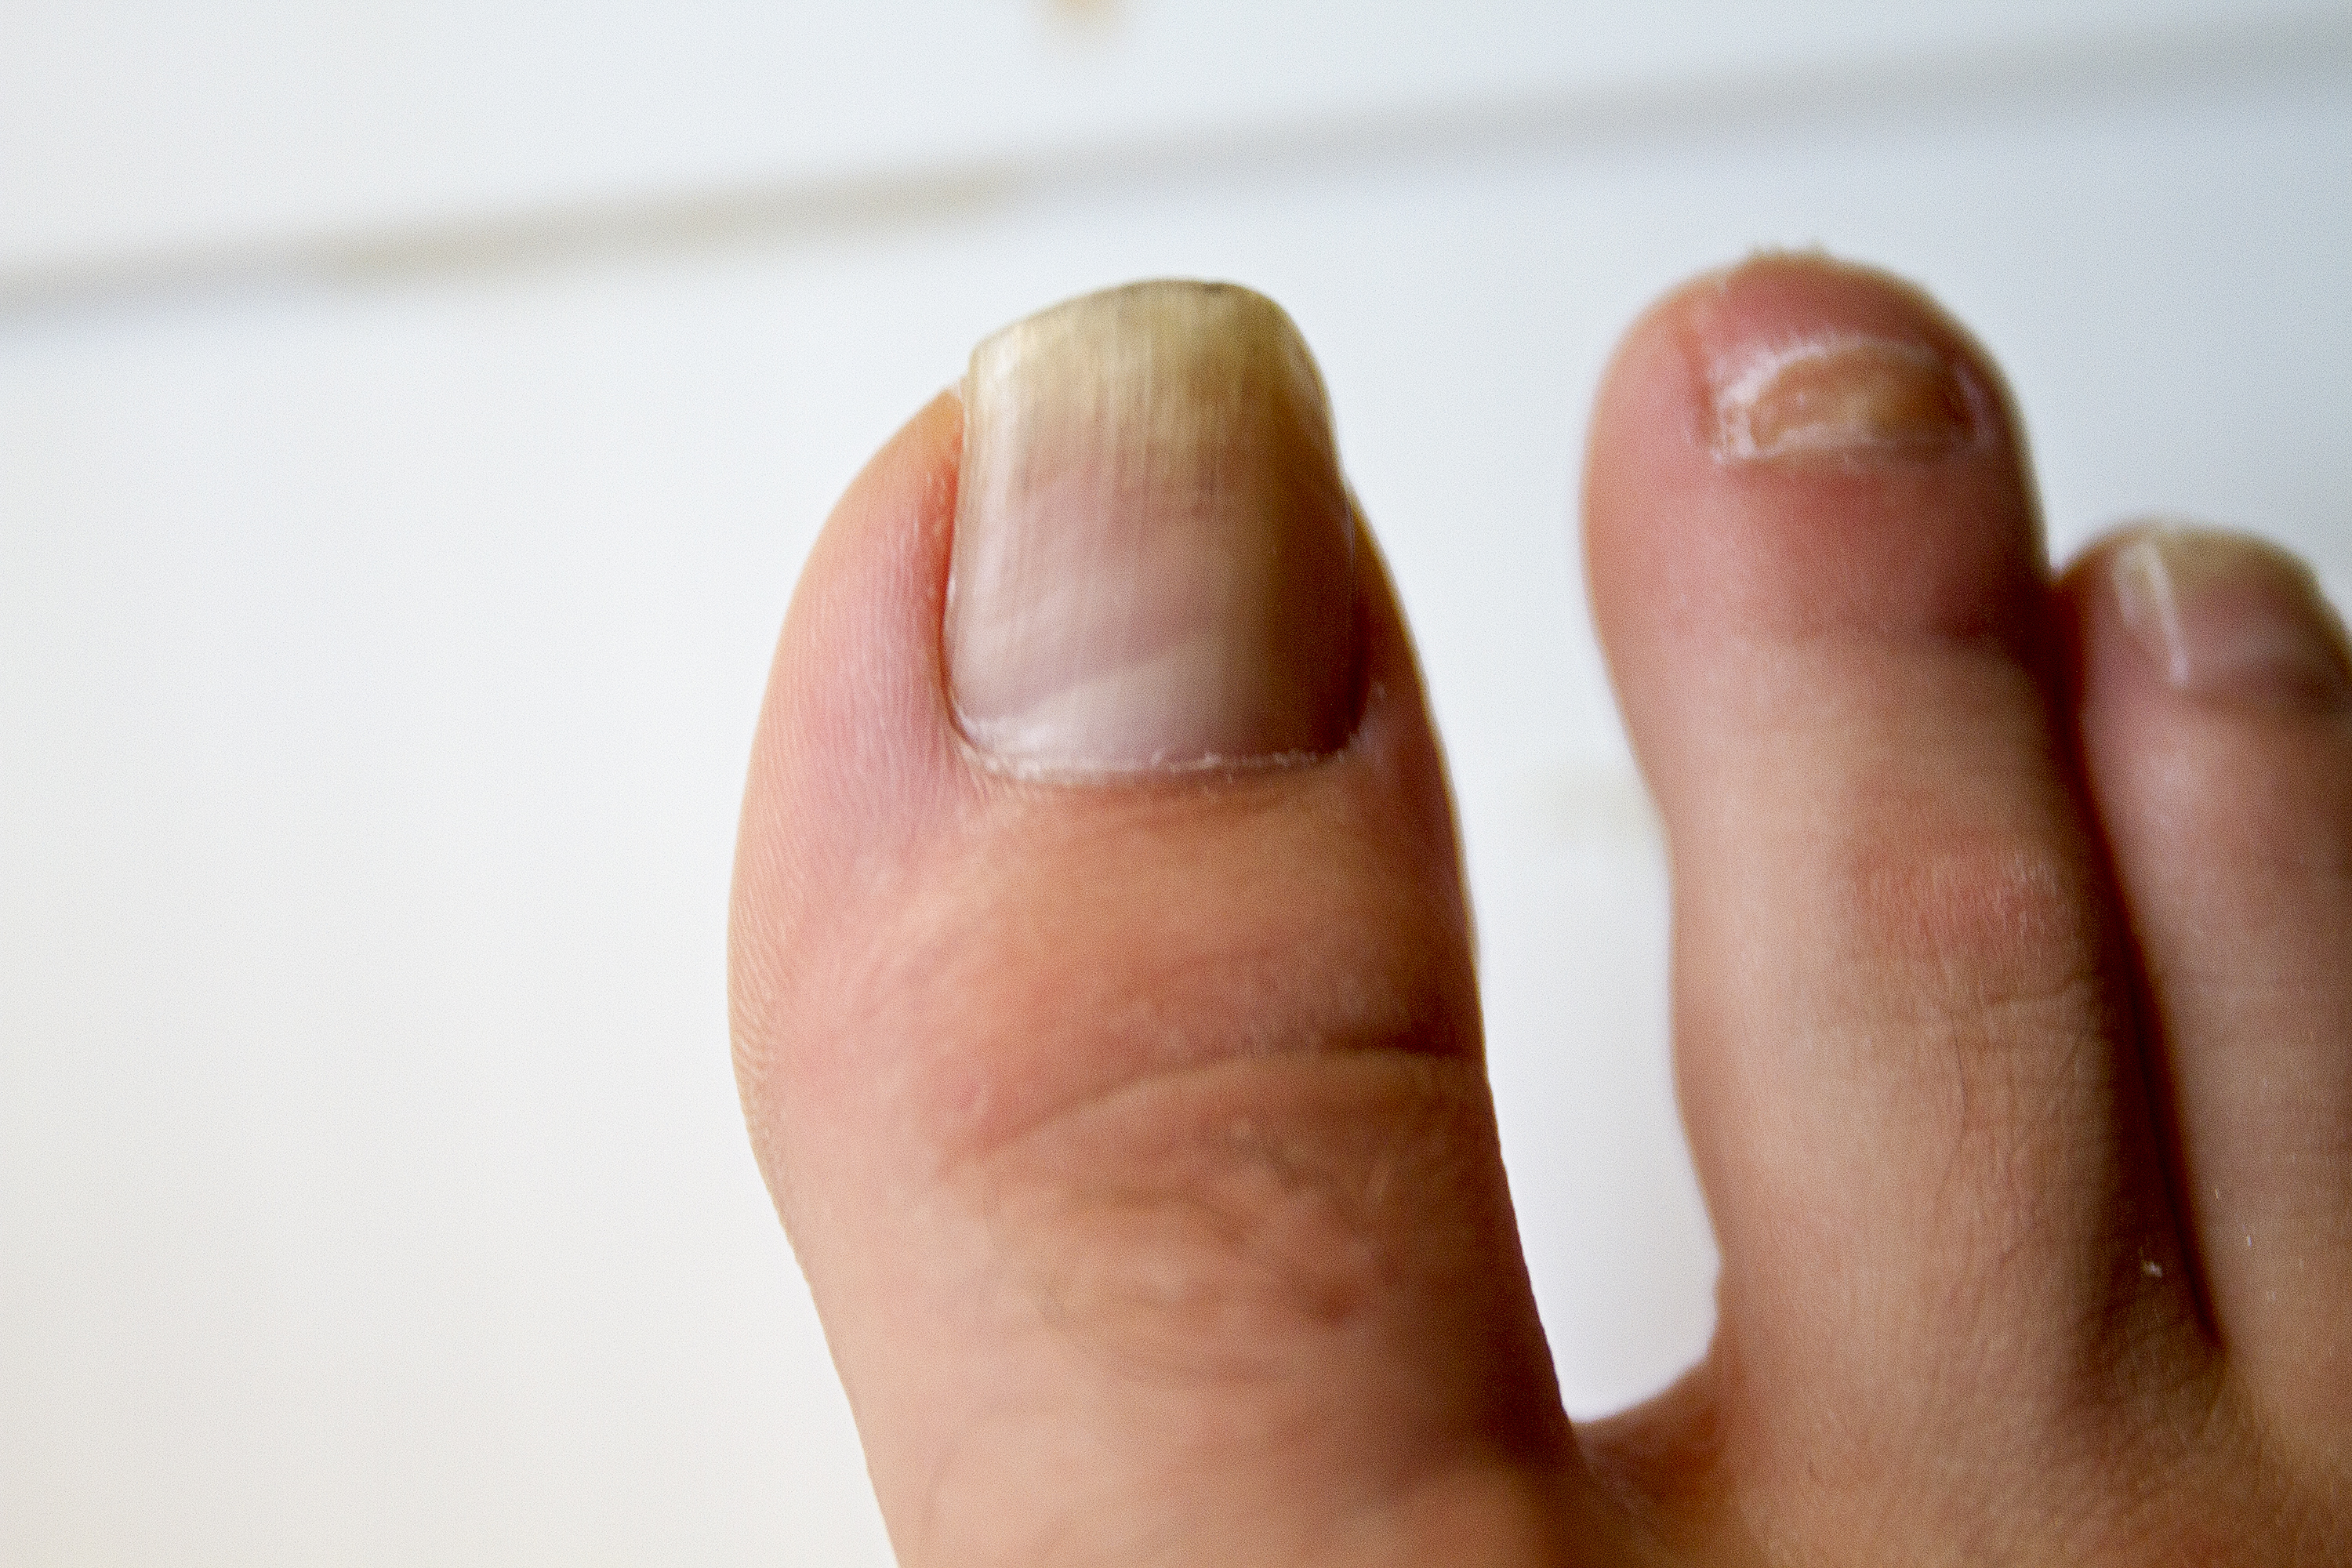 How to Apply Vicks to Toenail Fungus | LEAFtv